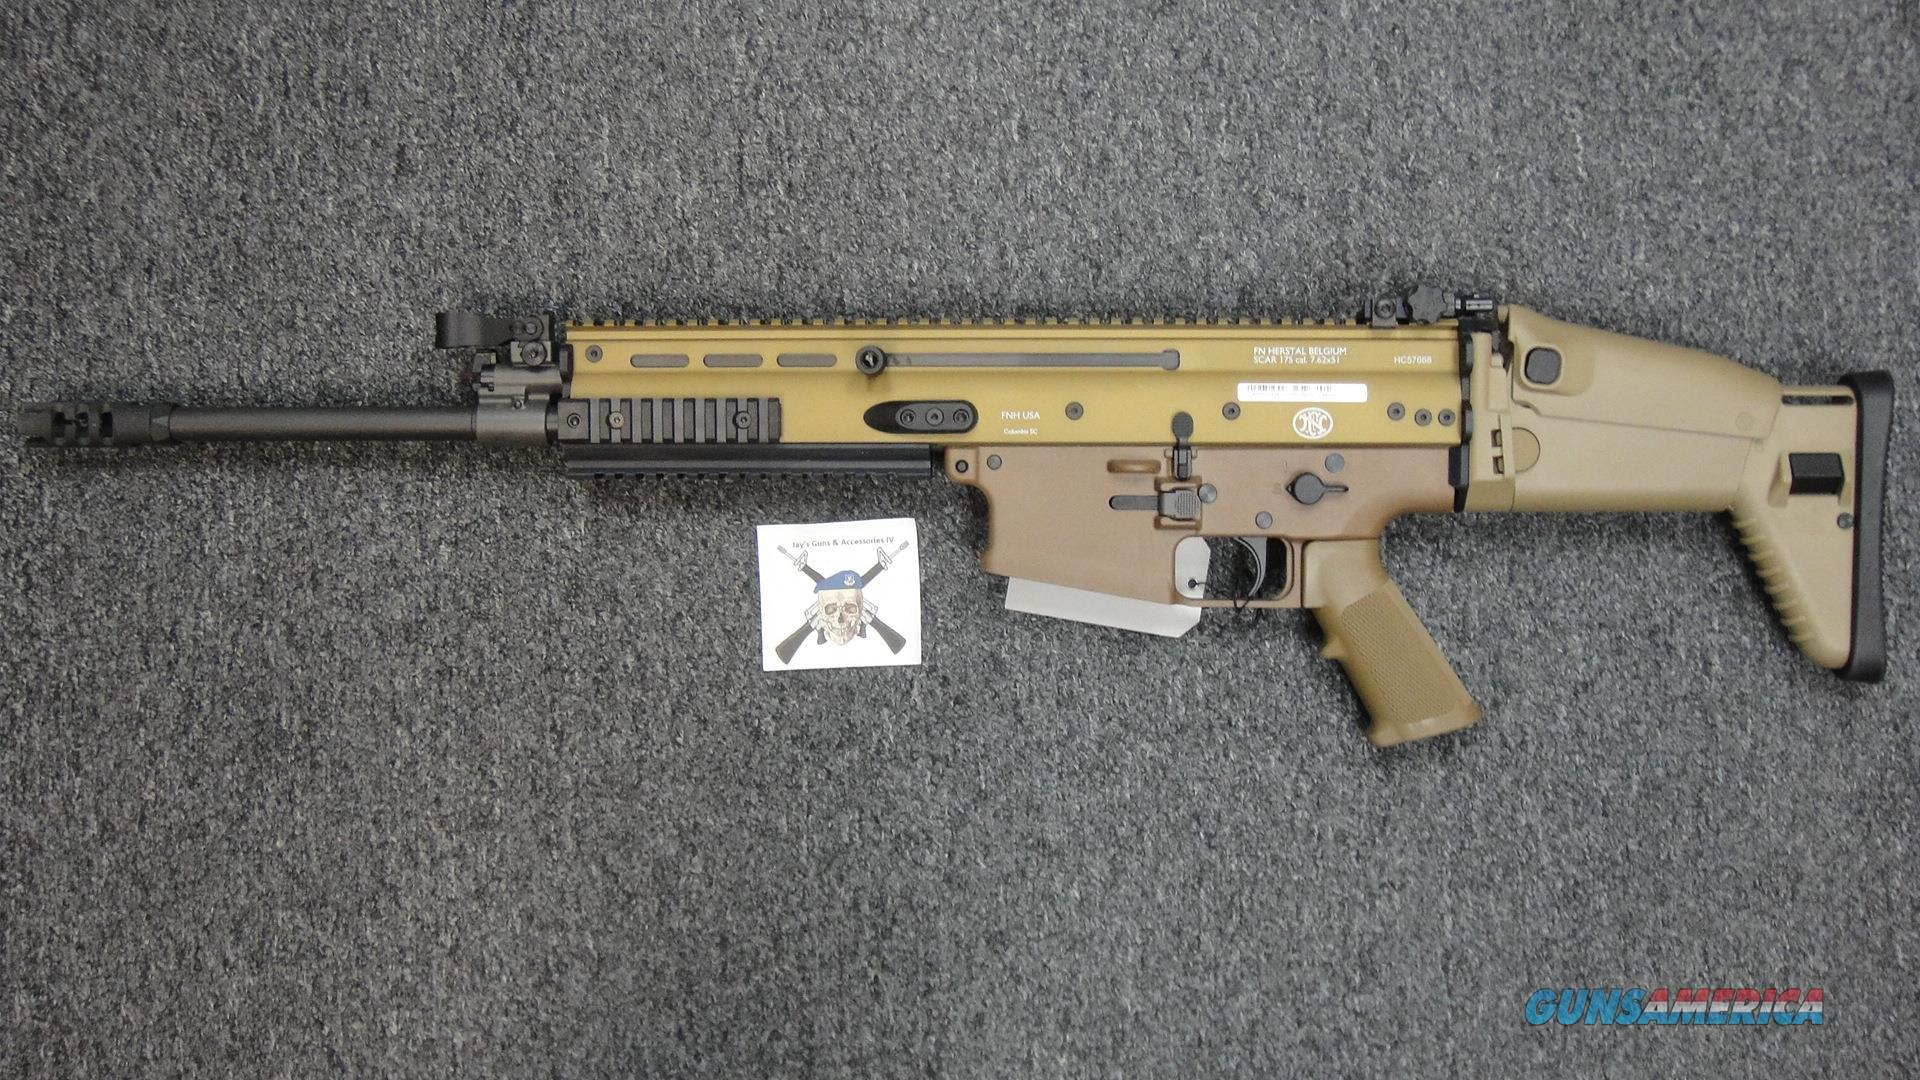 FNH SCAR 17S w/FDE Finish in .308 win   Guns > Rifles > FNH - Fabrique Nationale (FN) Rifles > Semi-auto > Other